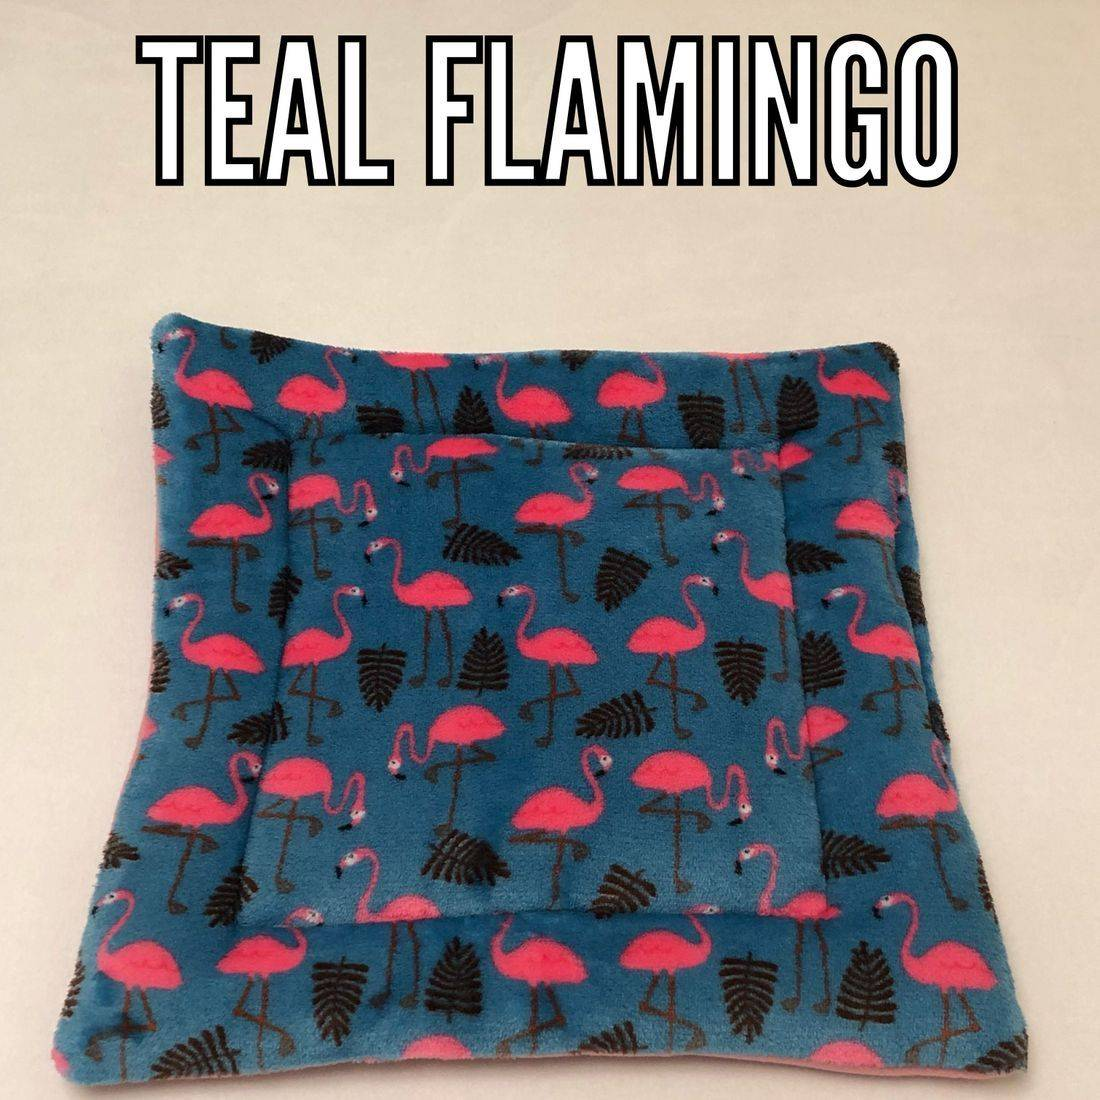 Teal Flamingo fabric